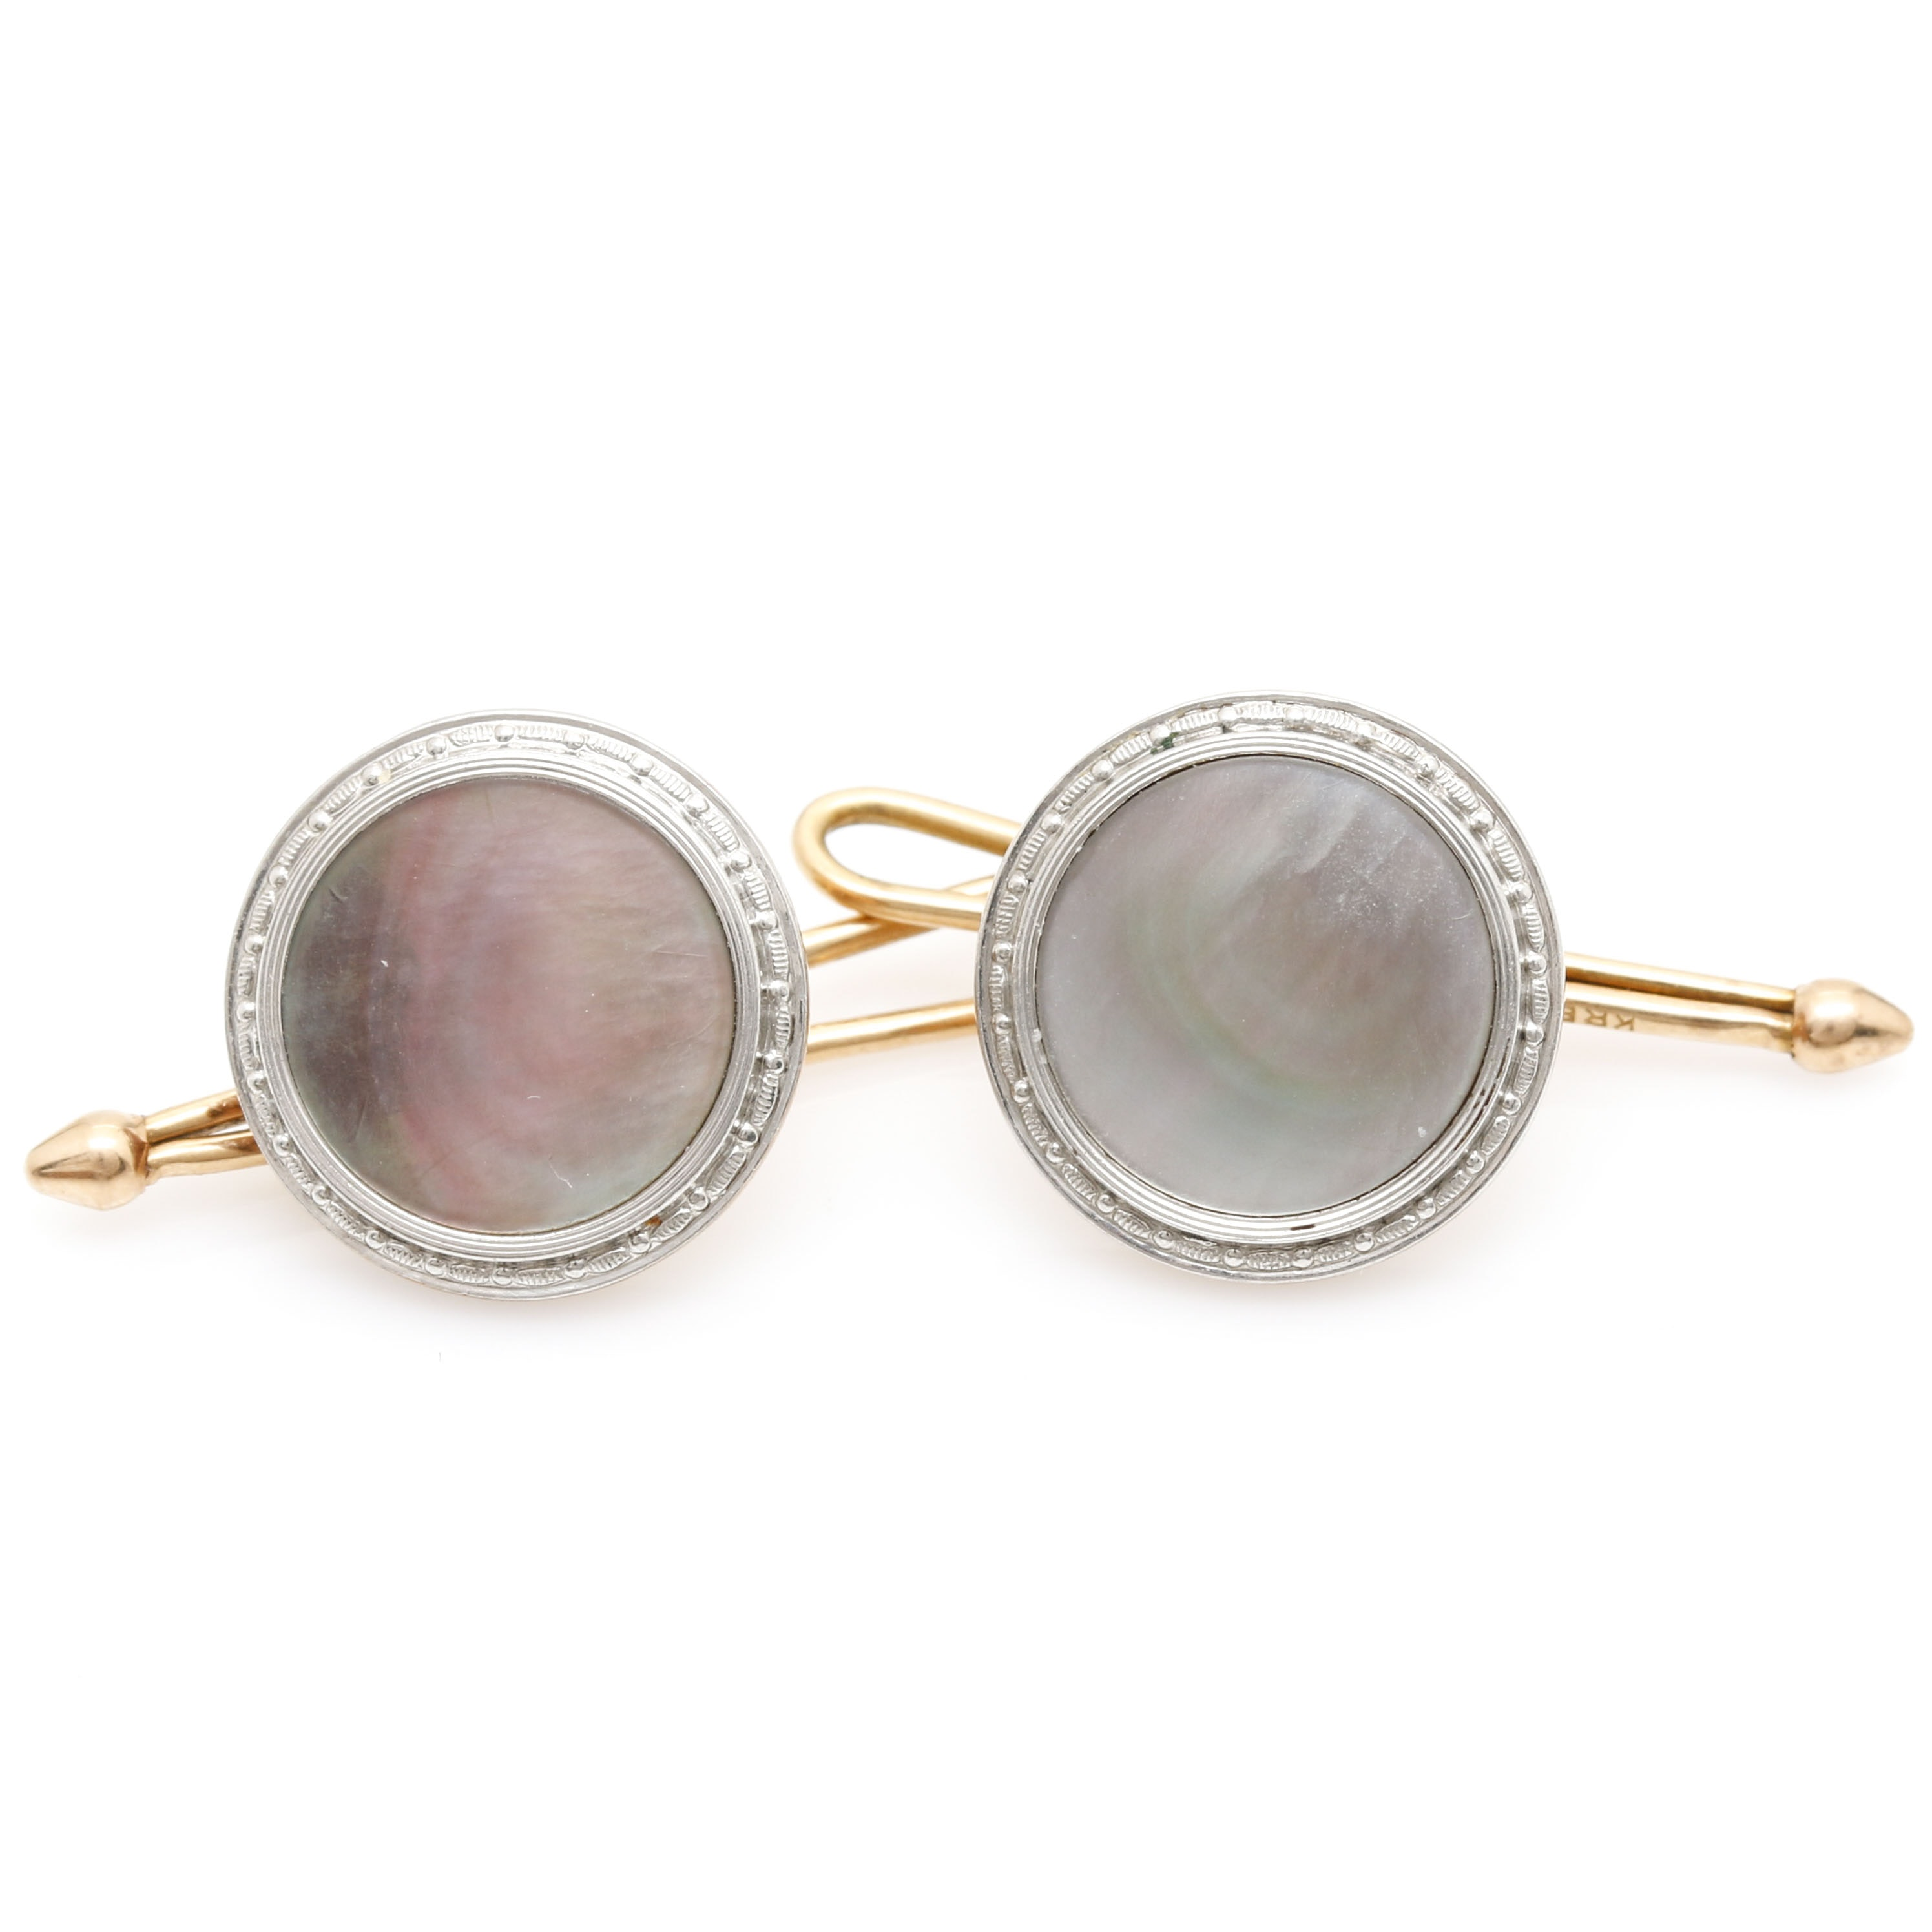 Platinum and 14K Gold Abalone Cufflinks